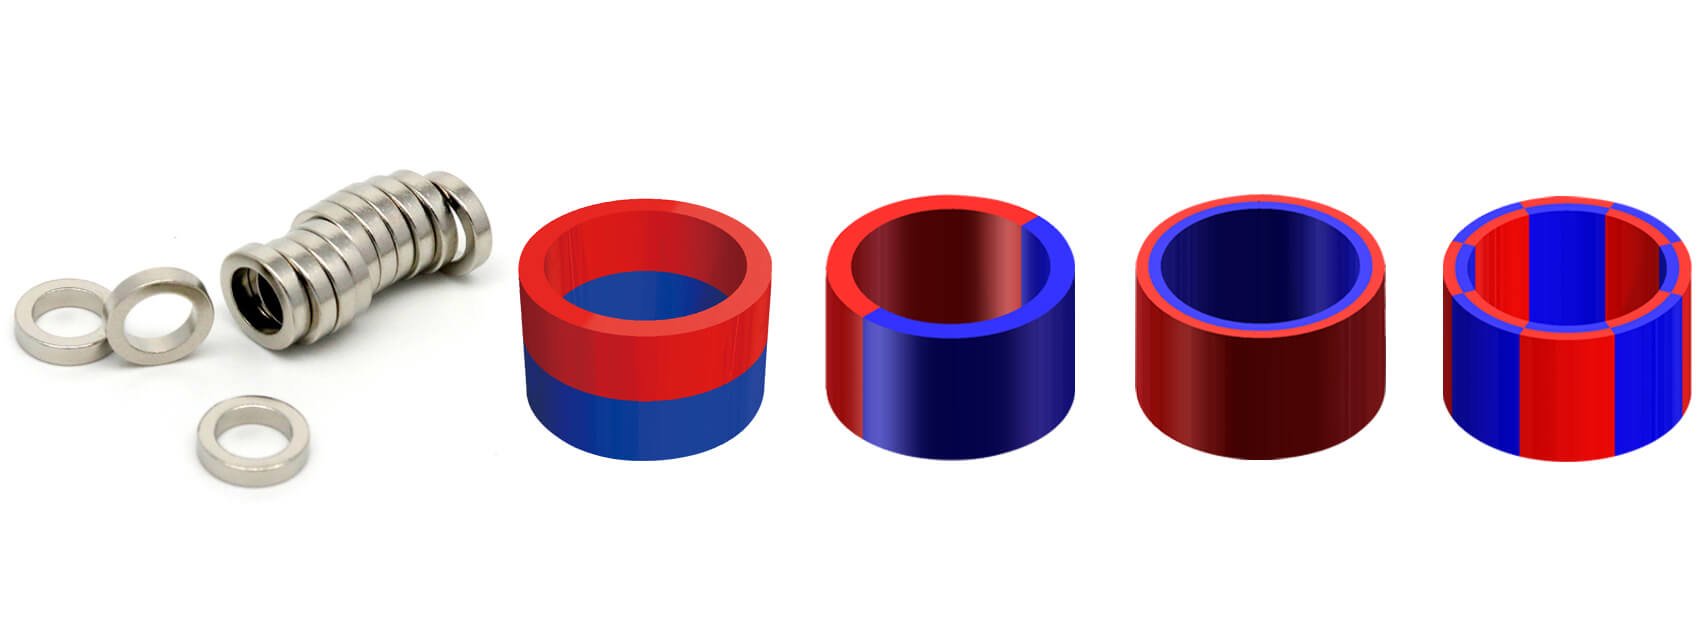 Ring Magnets.